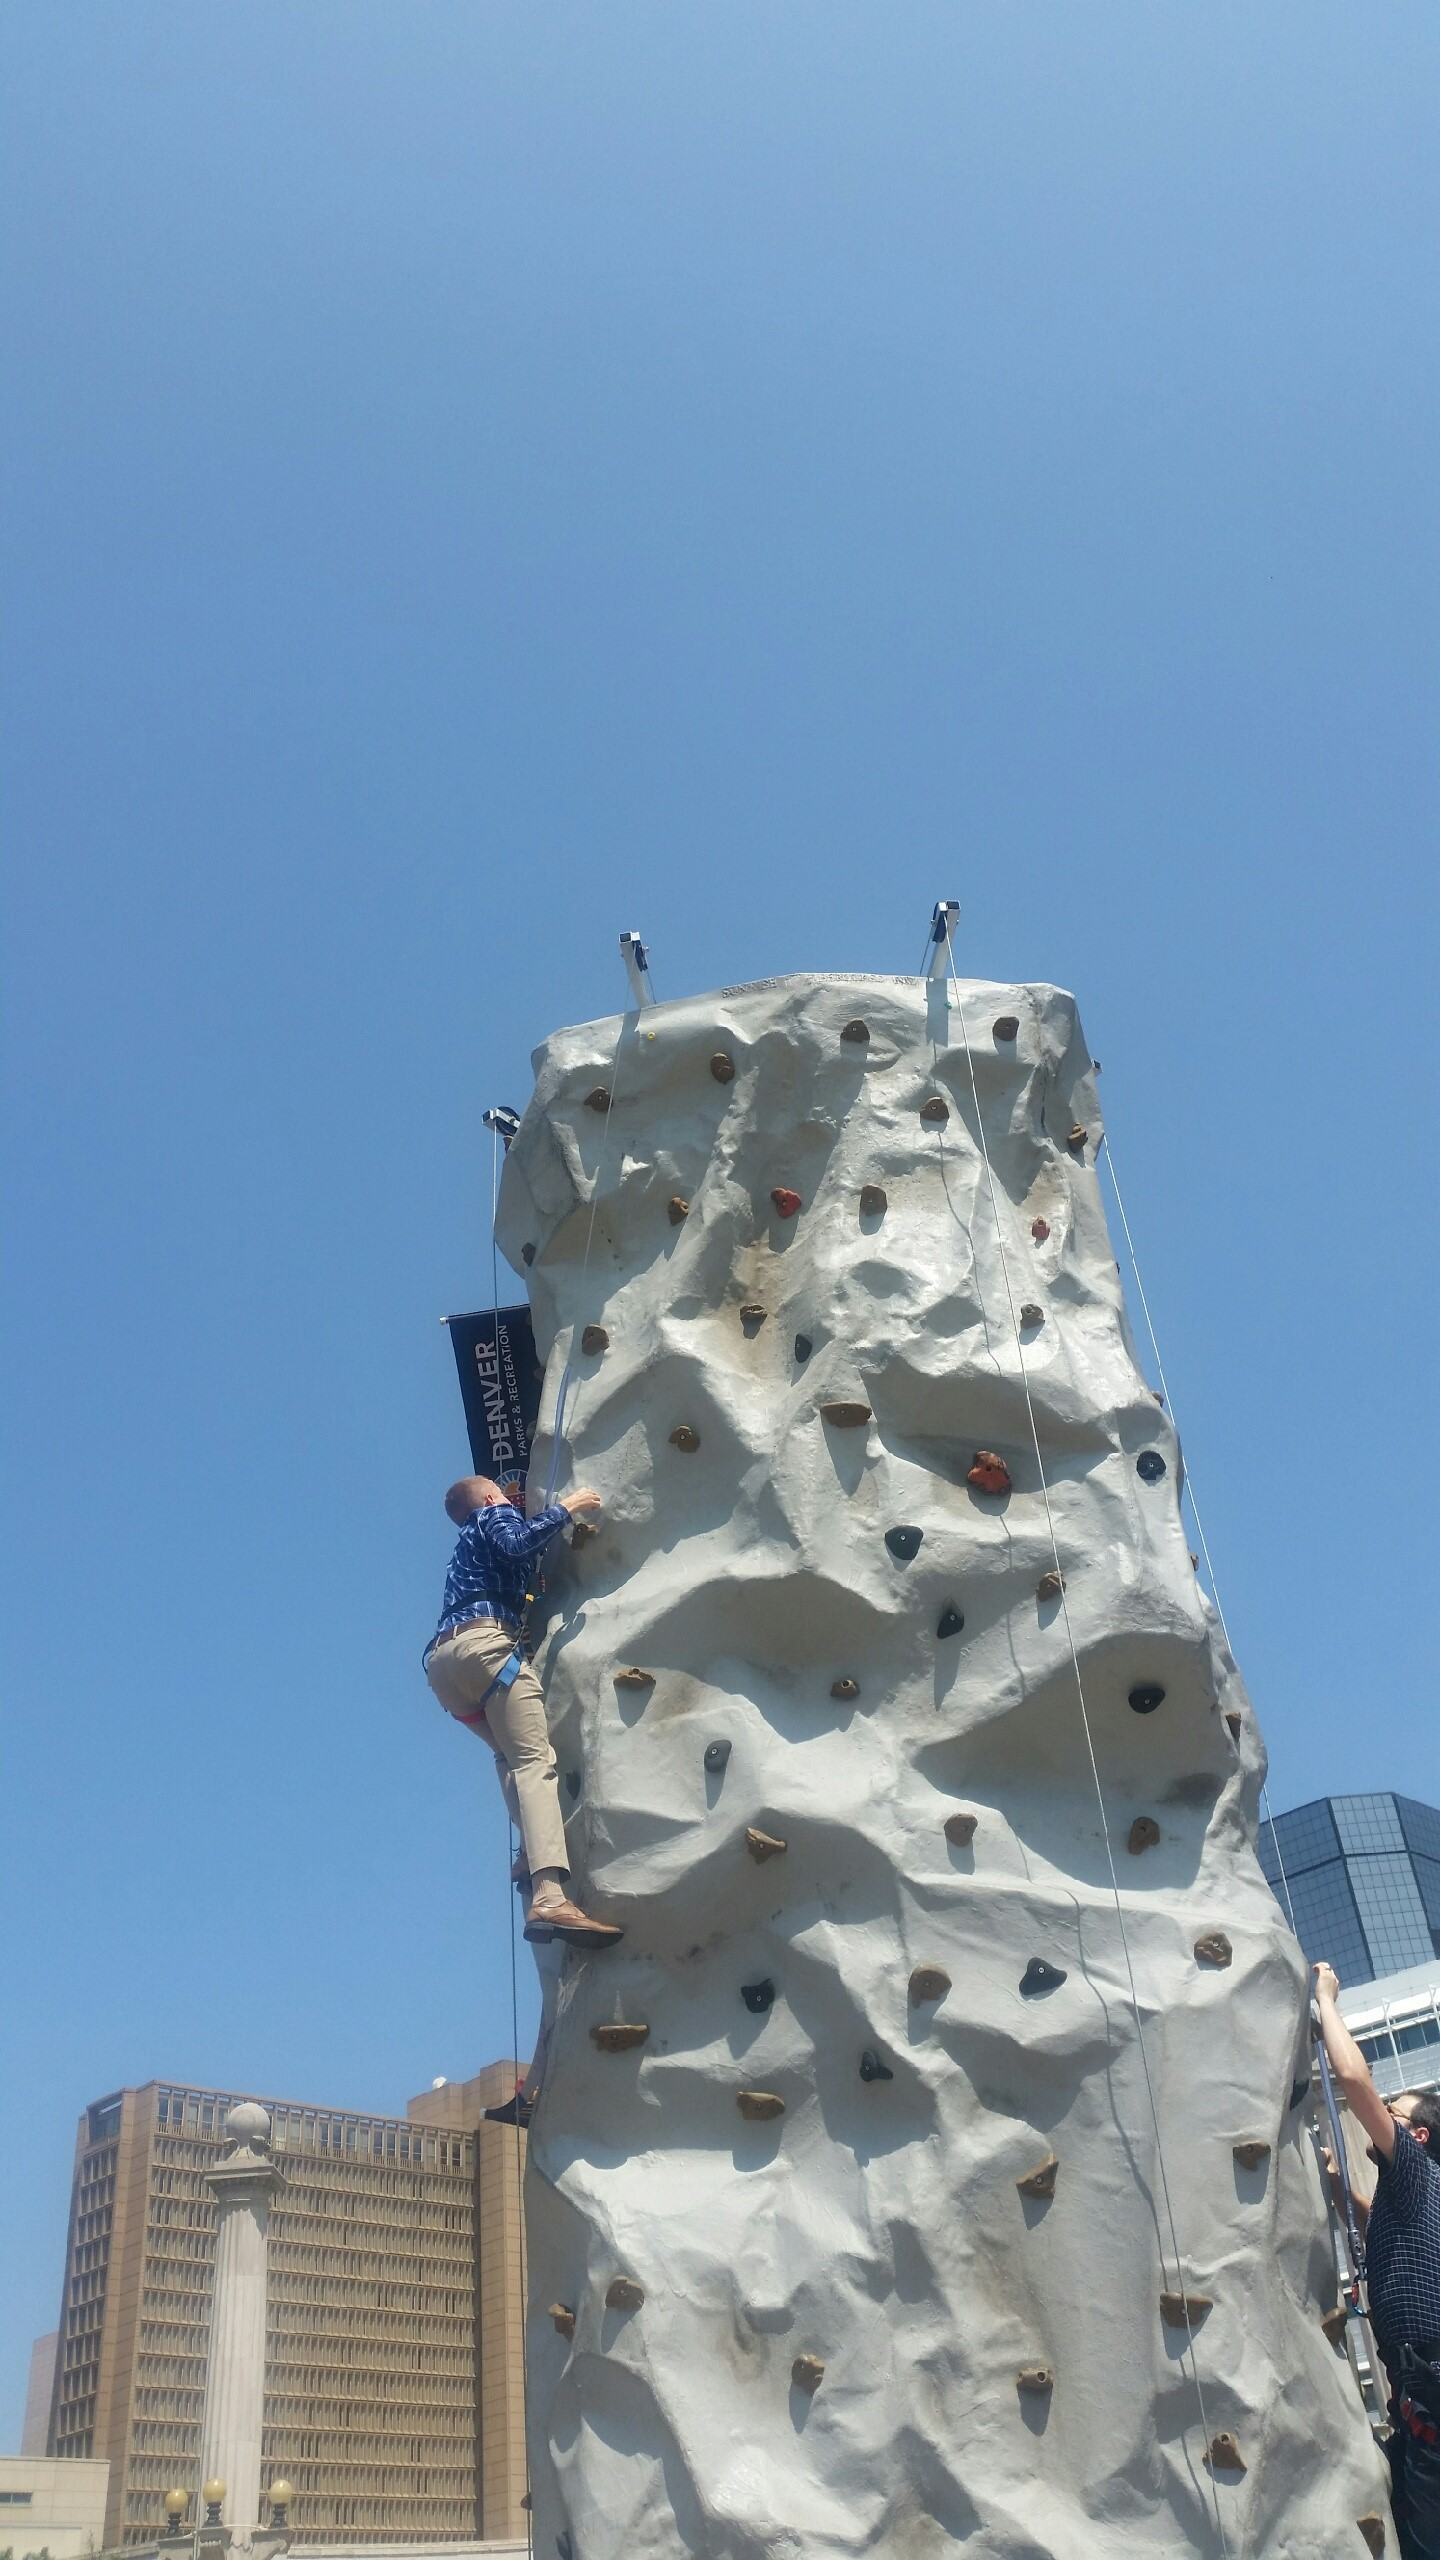 Sweaty person climbing rock wall at Civic Center Park (City Spirit Picnic)